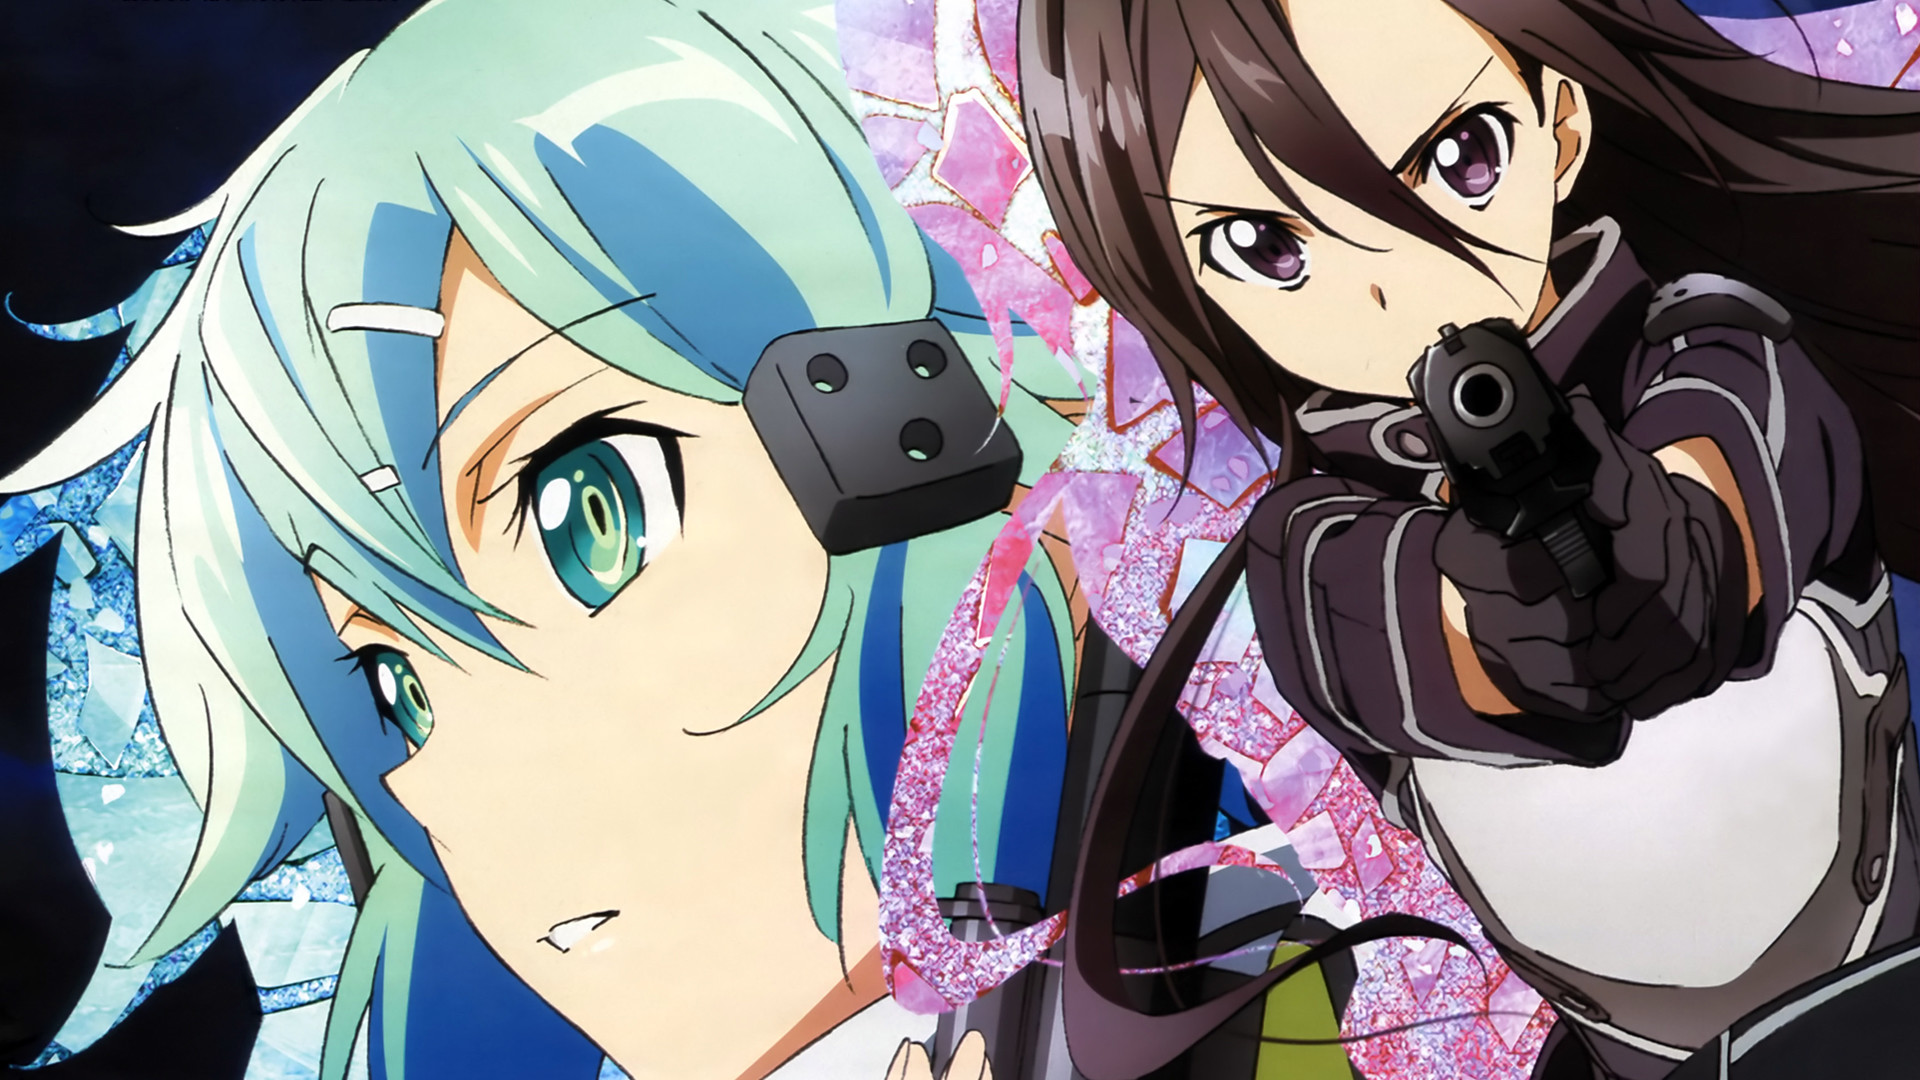 1920x1080 Sinon and Kirito Gun Gale Online